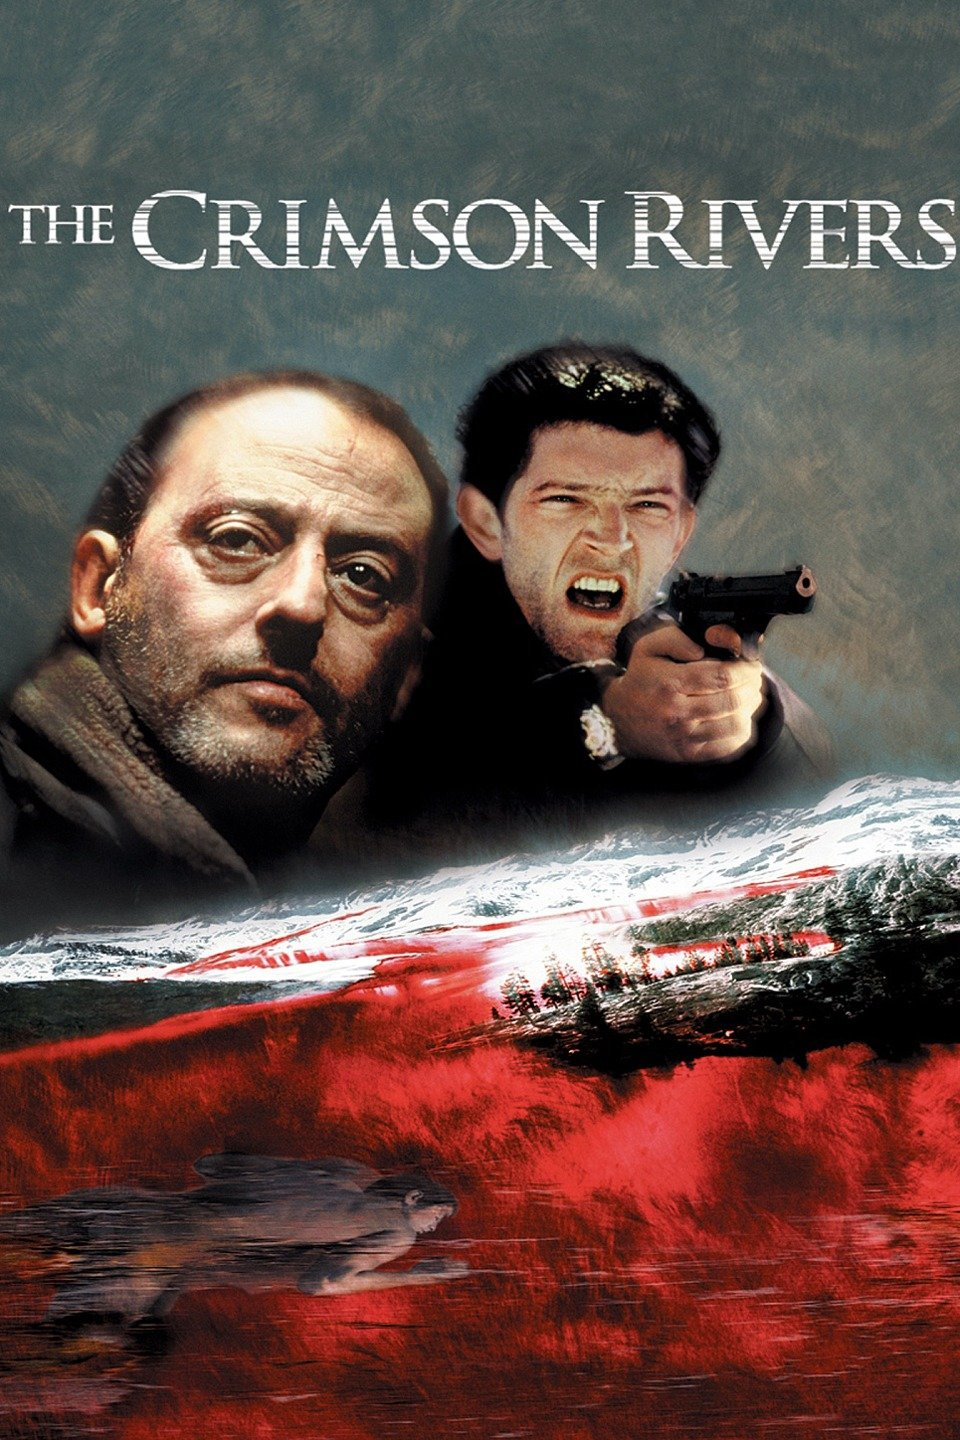 The Crimson Rivers 2000